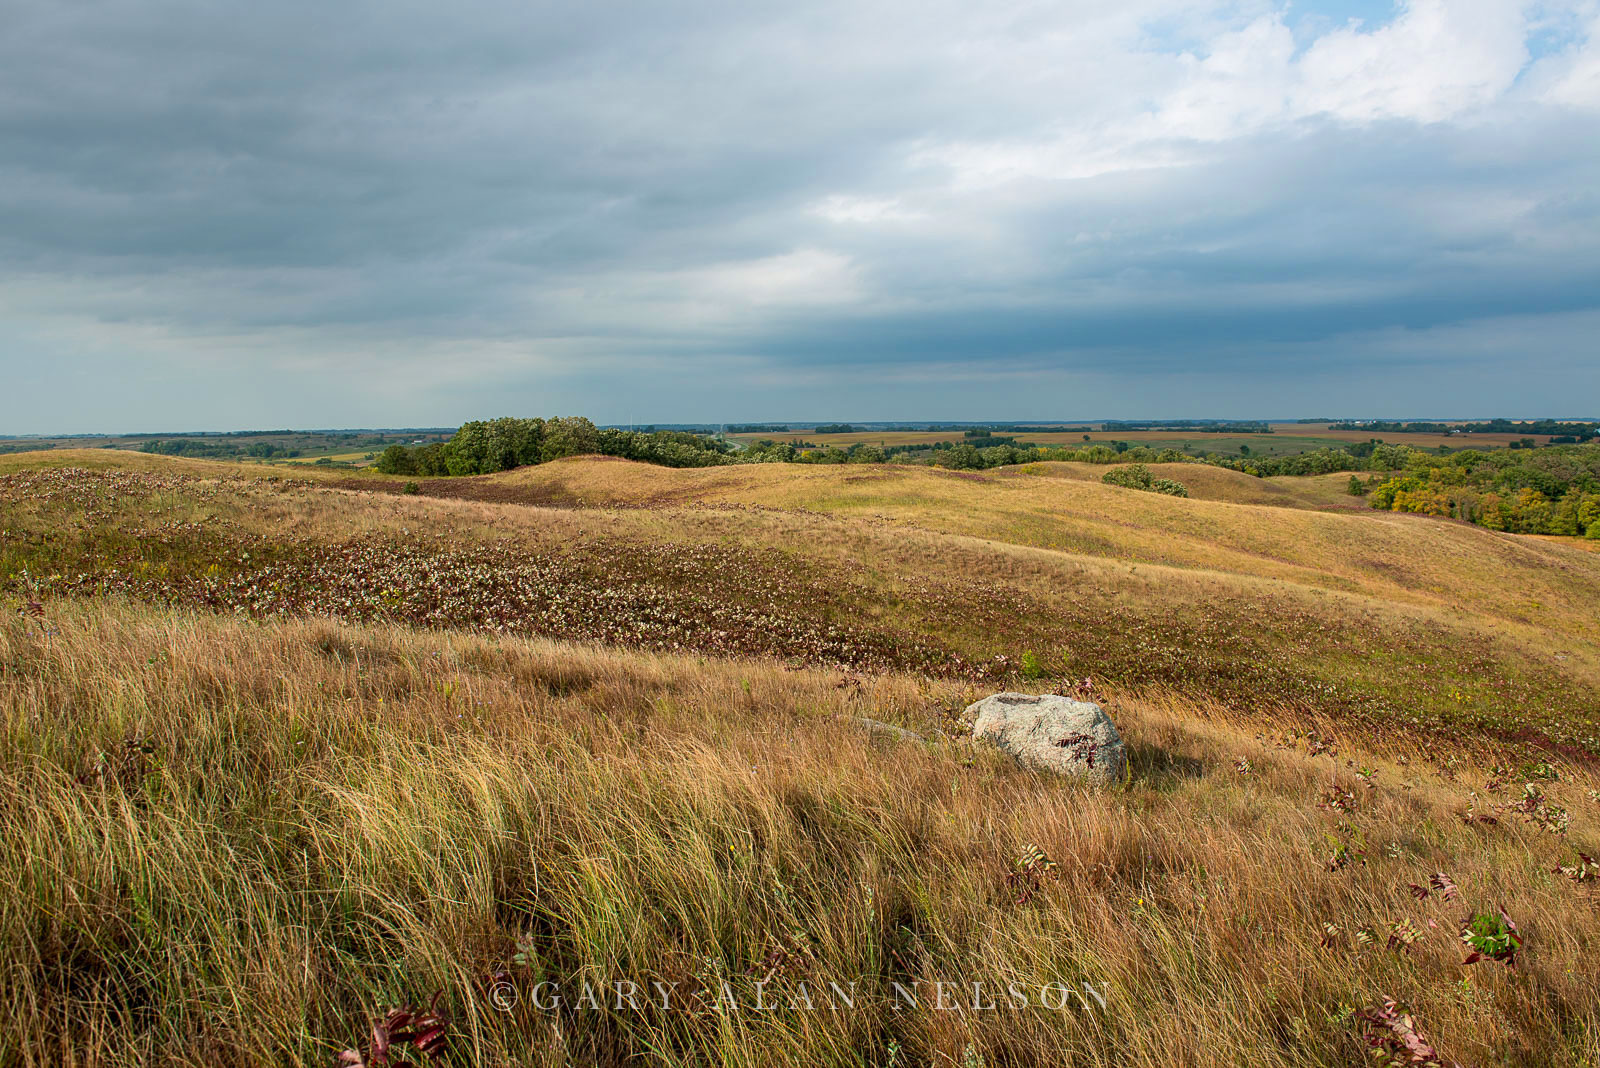 Rolling glacial moraine and glacial erratics on the prairie, Glacial Lakes State Park, Minnesota